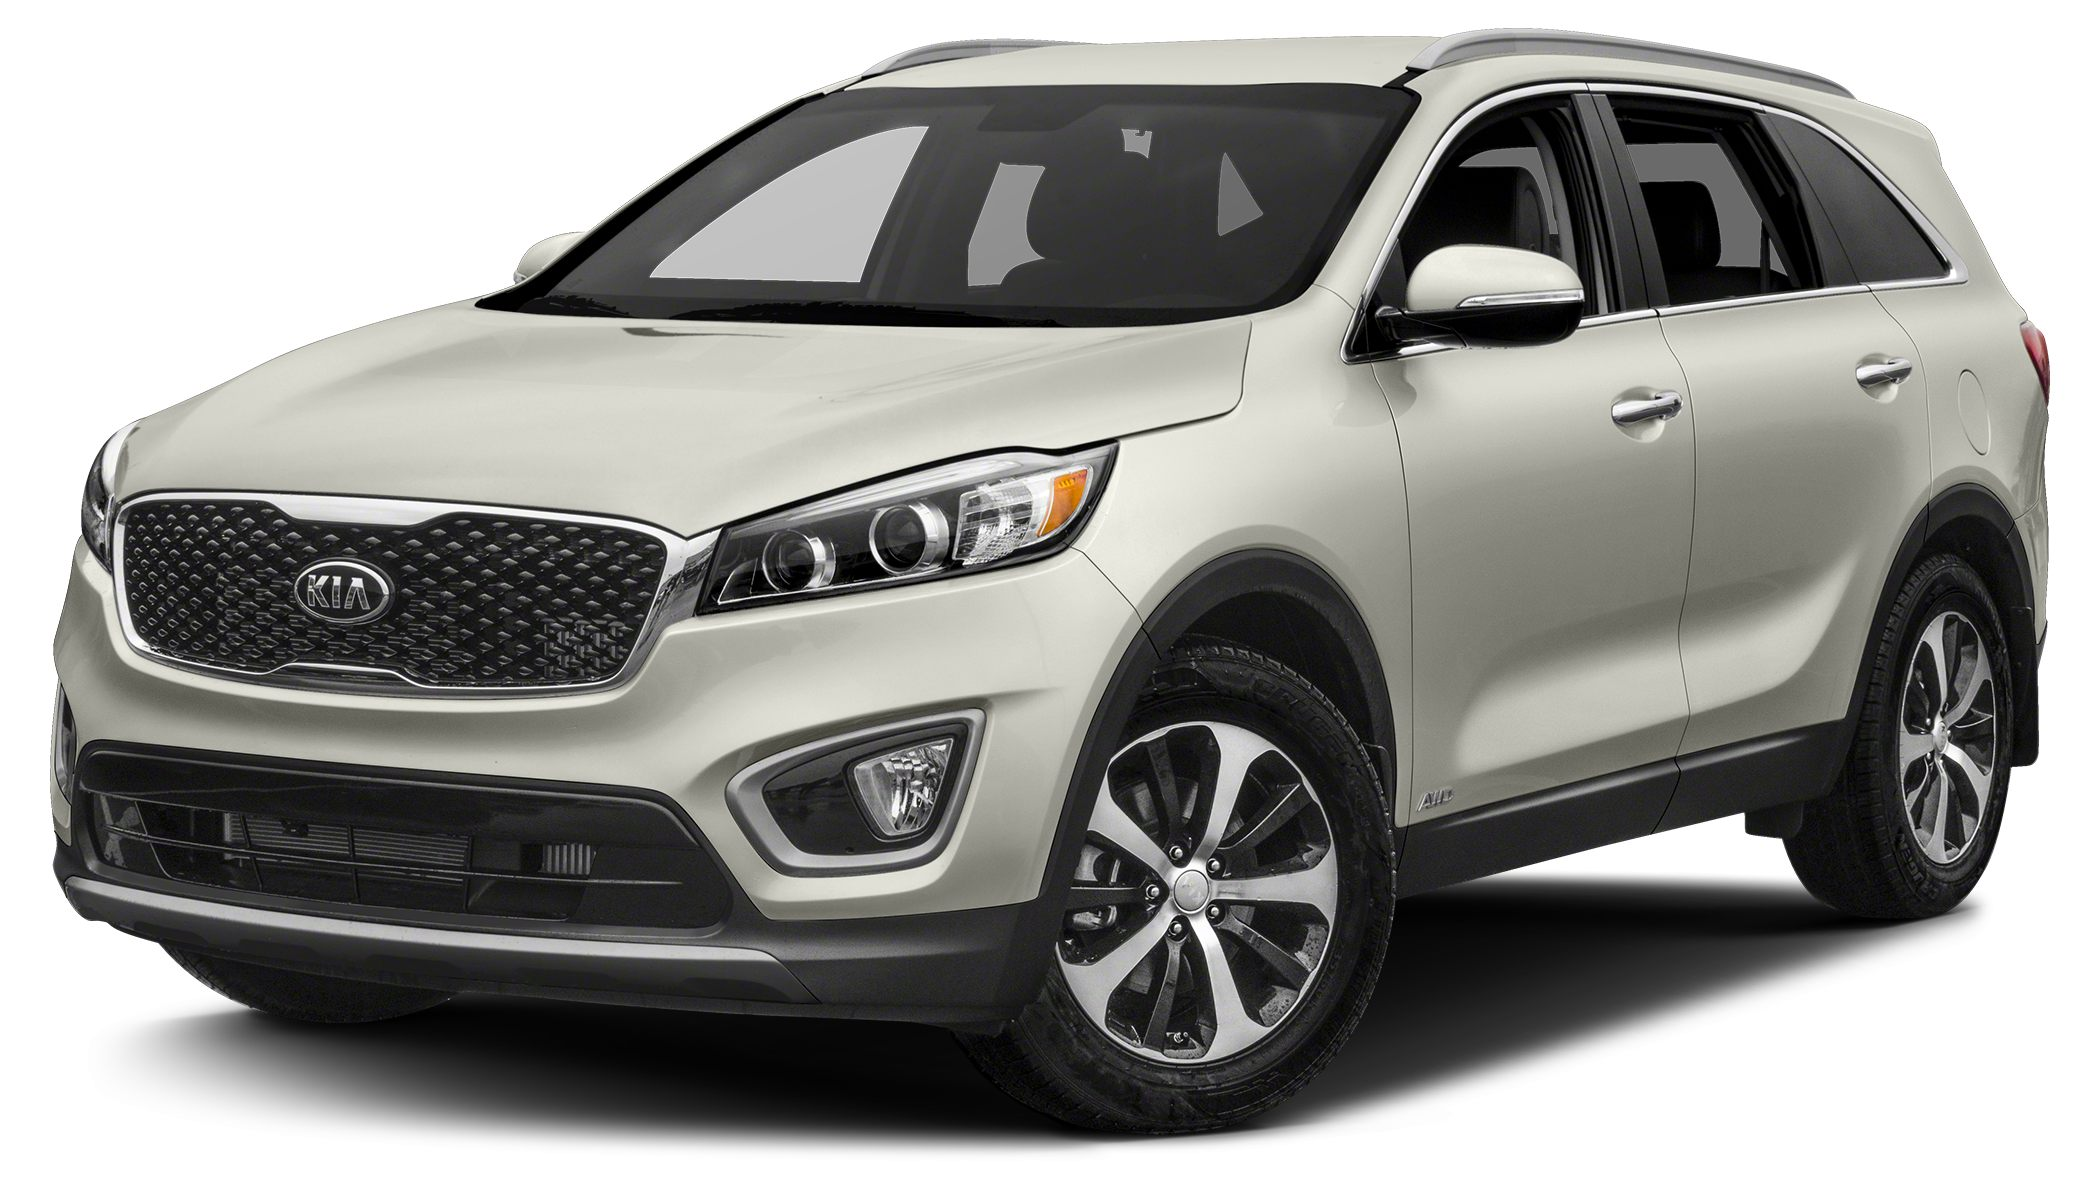 2016 Kia Sorento 33 EX Beige Heated Lumbar Leather Seats Power Seats 7 passenger 3rd row seatin